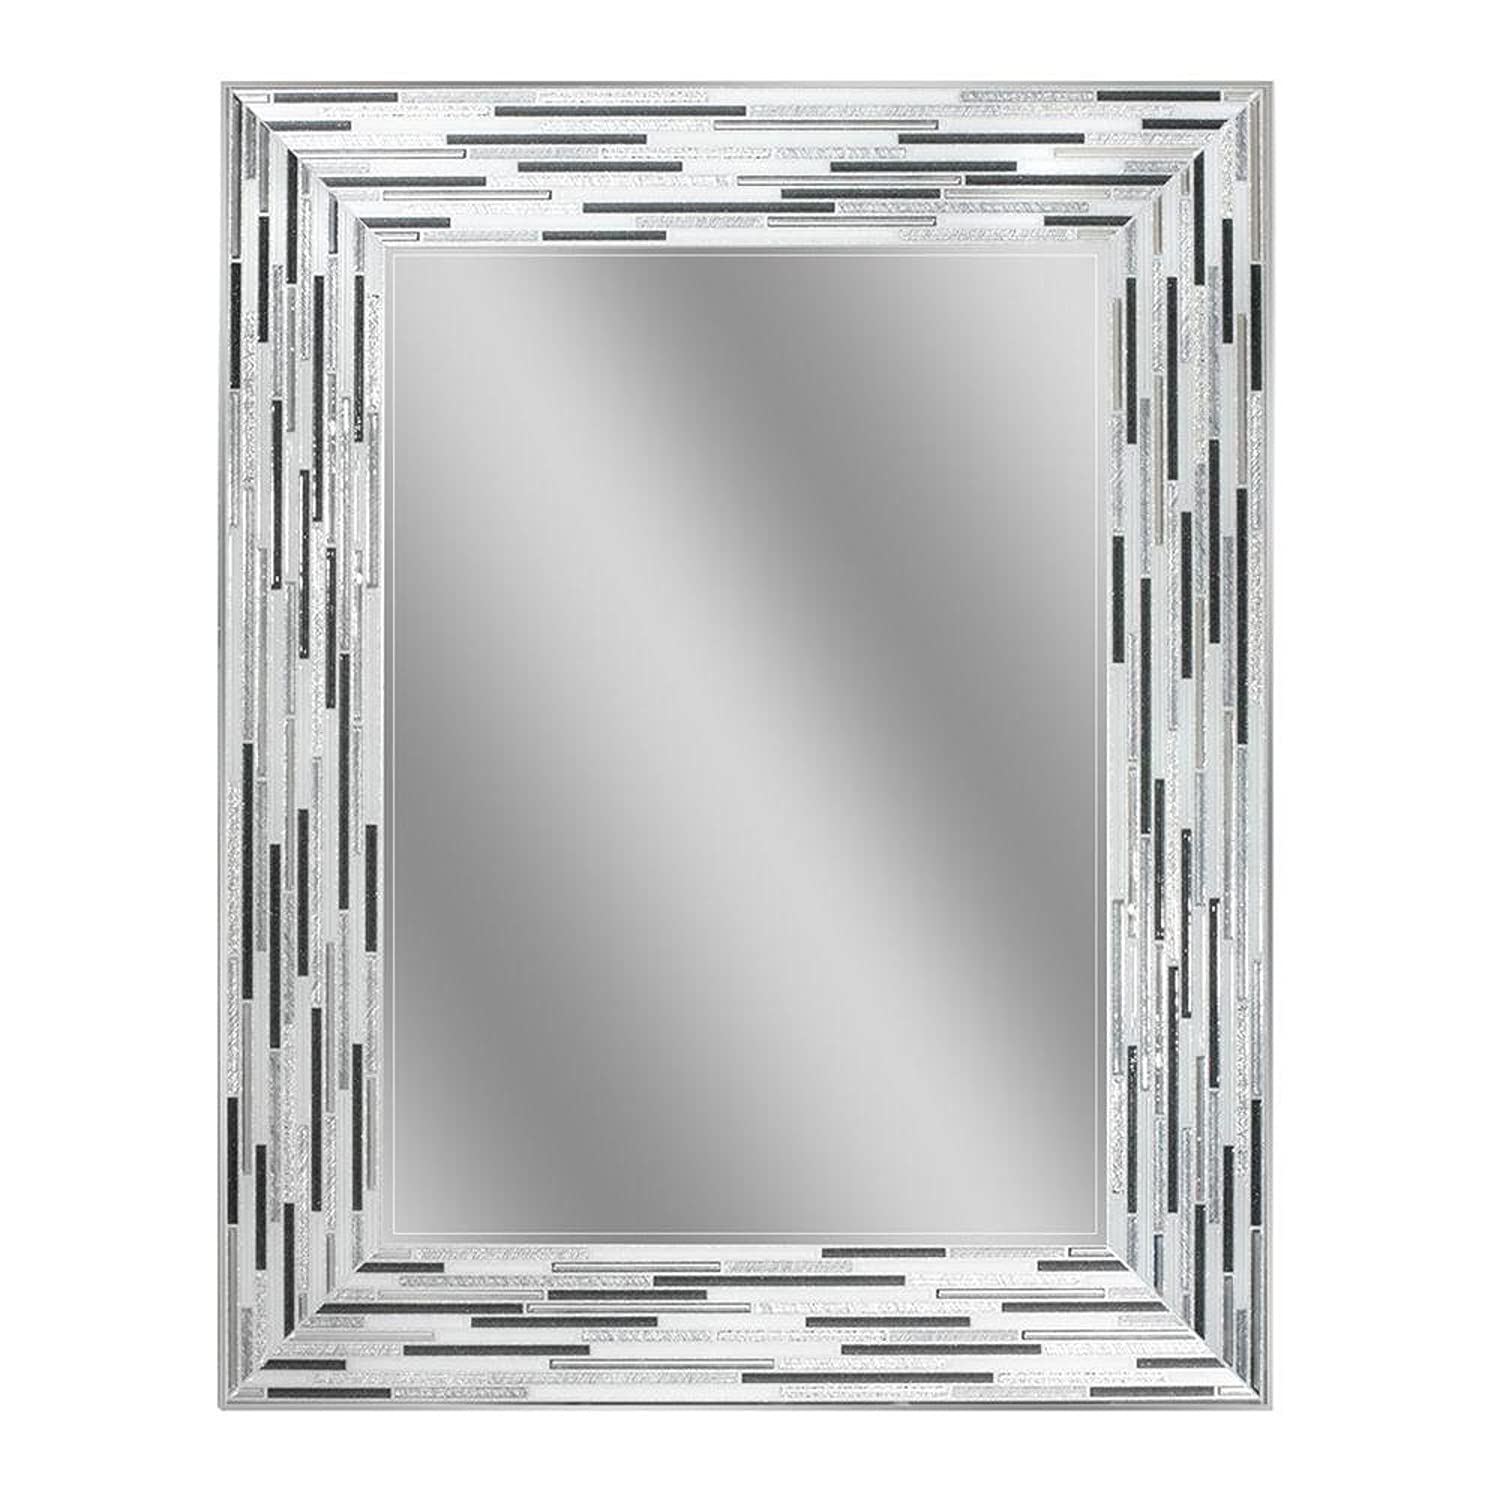 Headwest Reeded Charcoal Tiles Wall Mirror, 30 x 24 30 x 24 Headwest Inc 1220